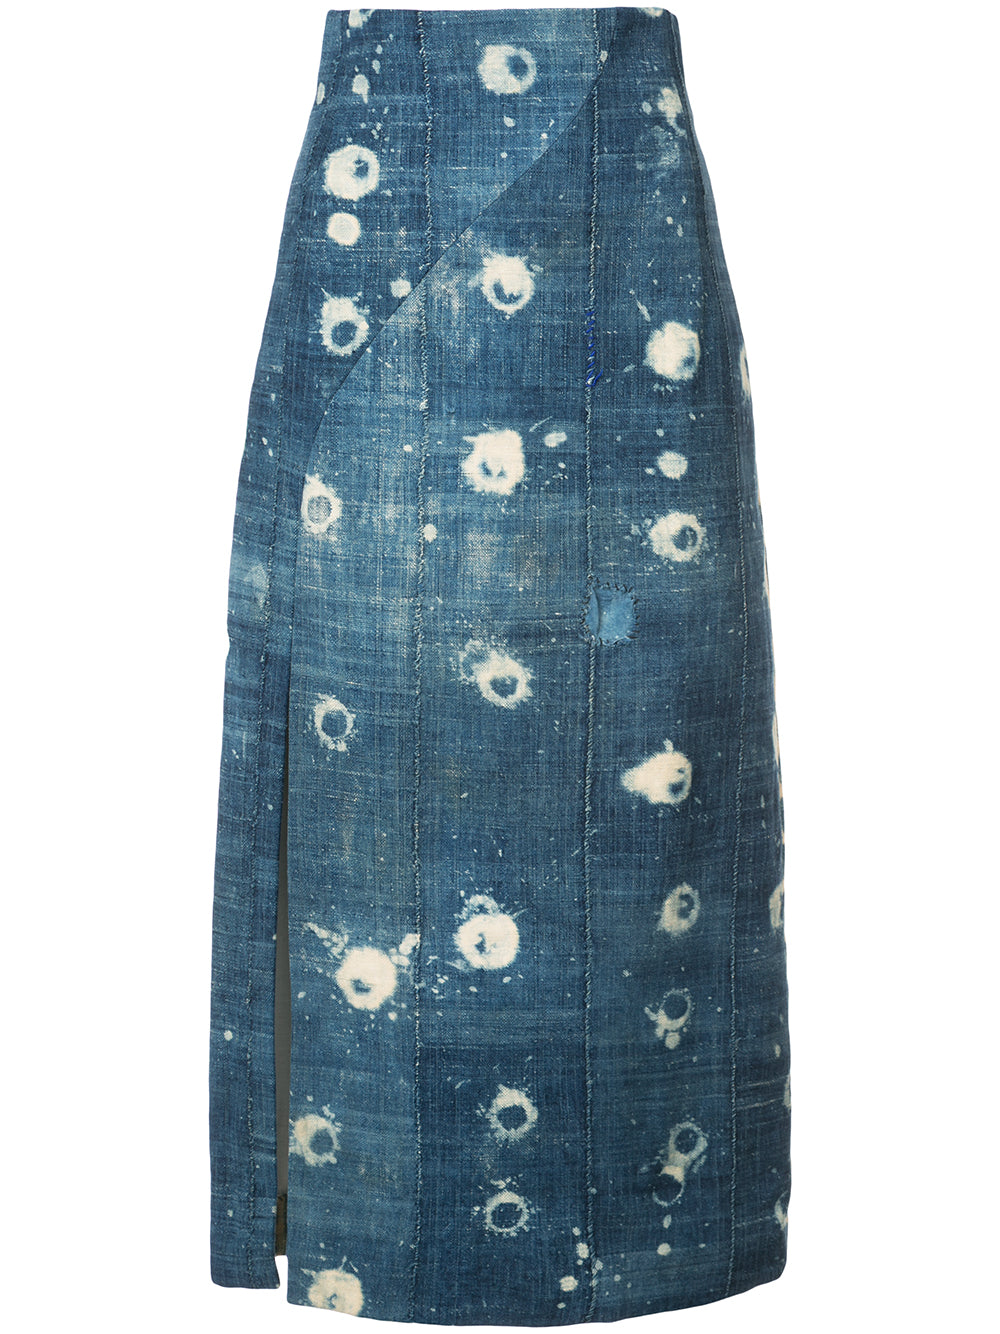 VINTAGE CHAMBRAY HIGH WAISTED PENCIL SKIRT WITH SLIT  -  PRE-ORDER